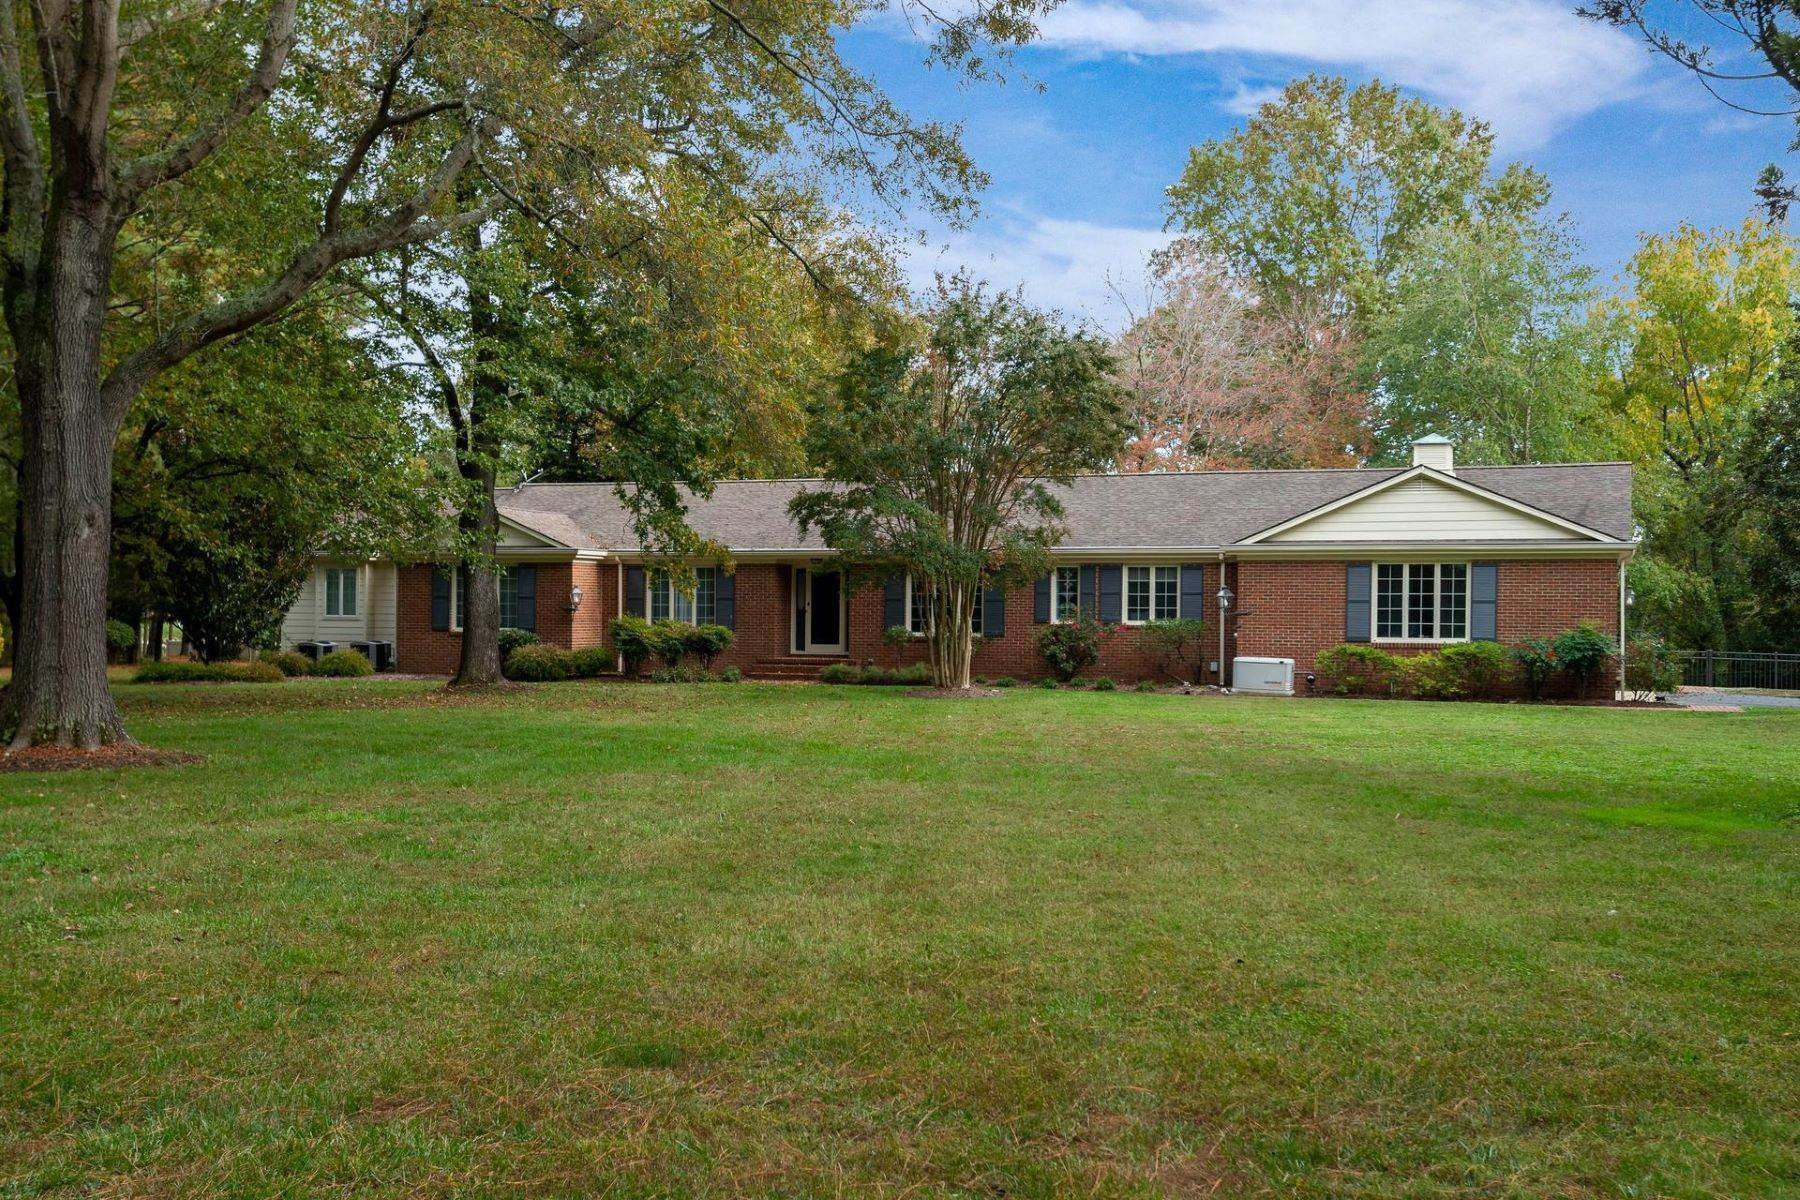 Single Family Homes for Sale at 4770 Sailors Retreat Rd Oxford, Maryland 21654 United States